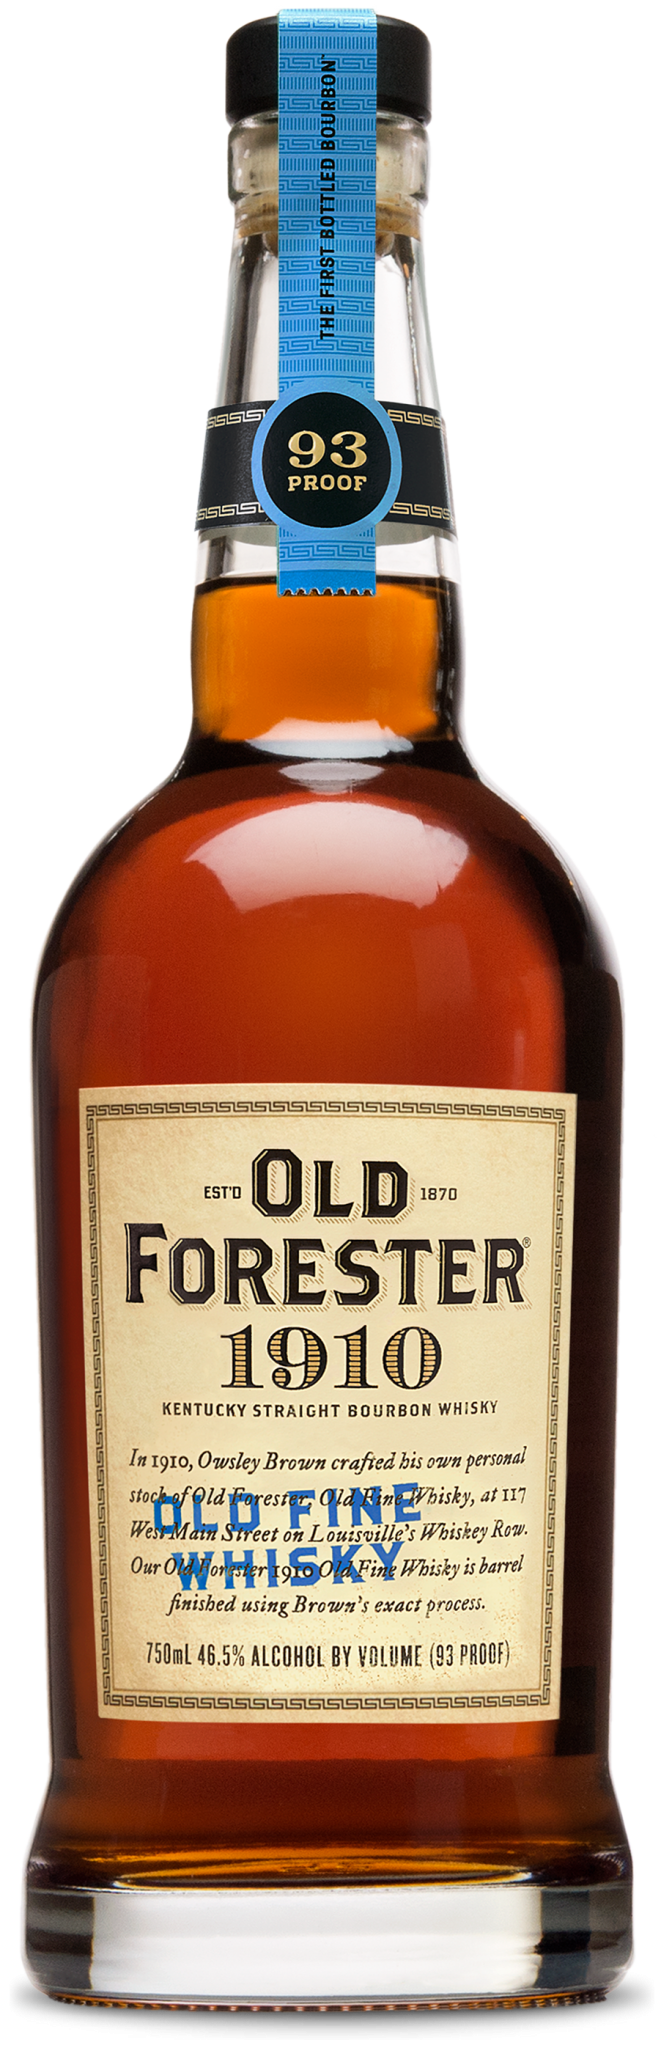 A bottle of Old Forester 2019 Birthday Bourbon on a black background.